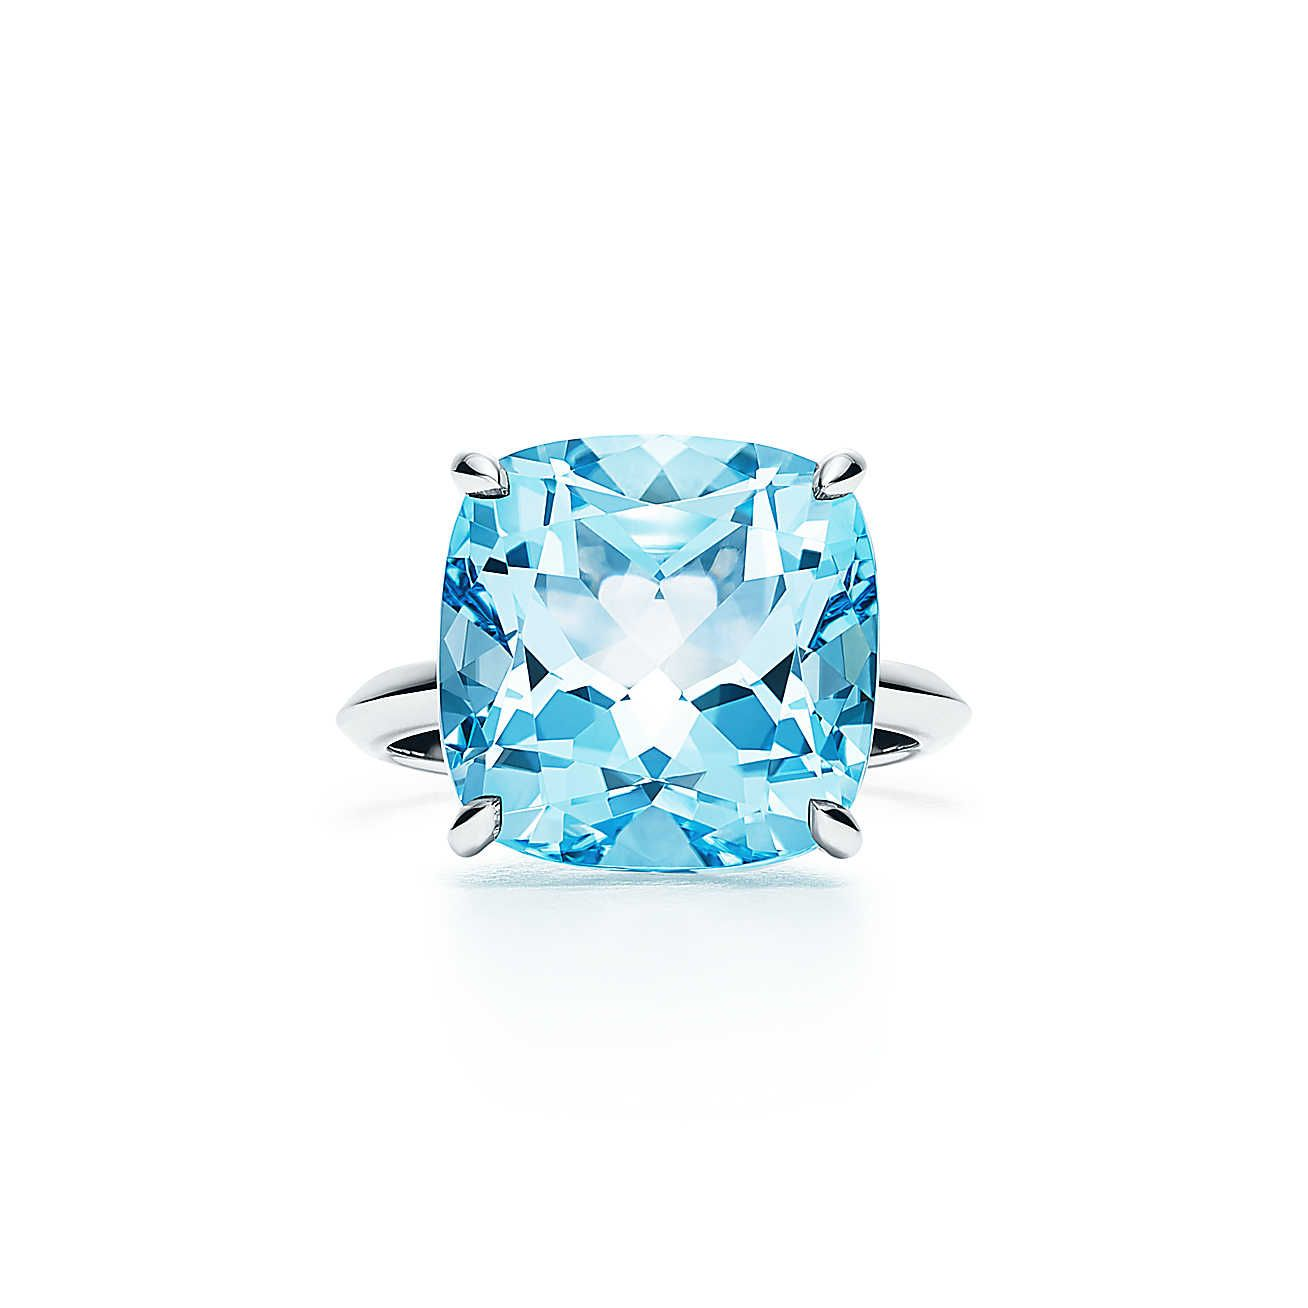 l image by ring again lafonn around it blue from rings wisconsin cropped bling front products topaz